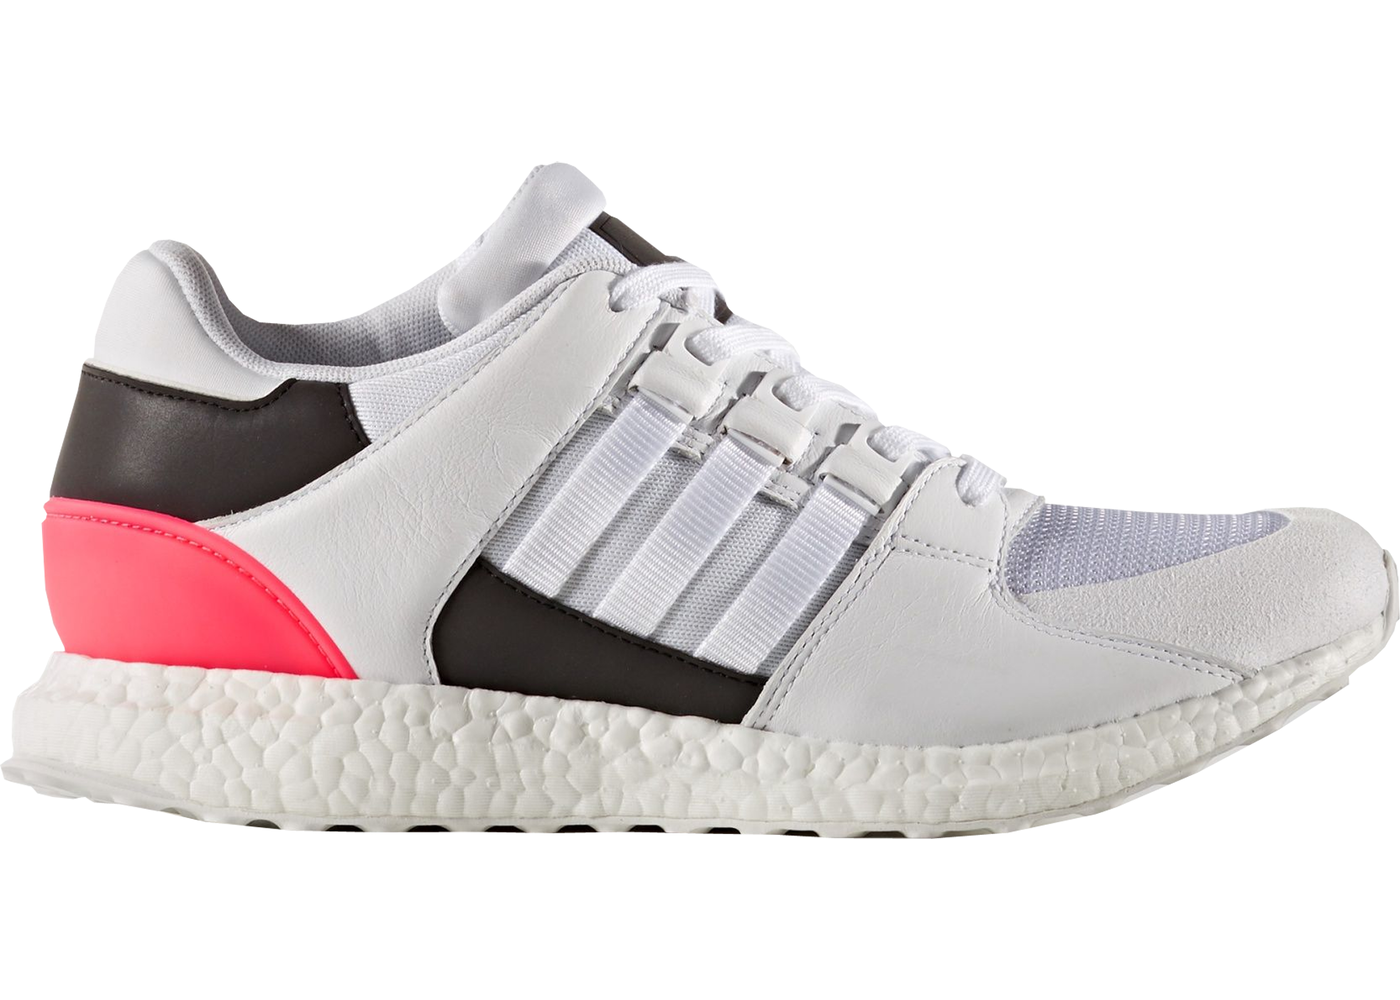 adidas EQT Boost 93/17 White Turbo Red Release Date